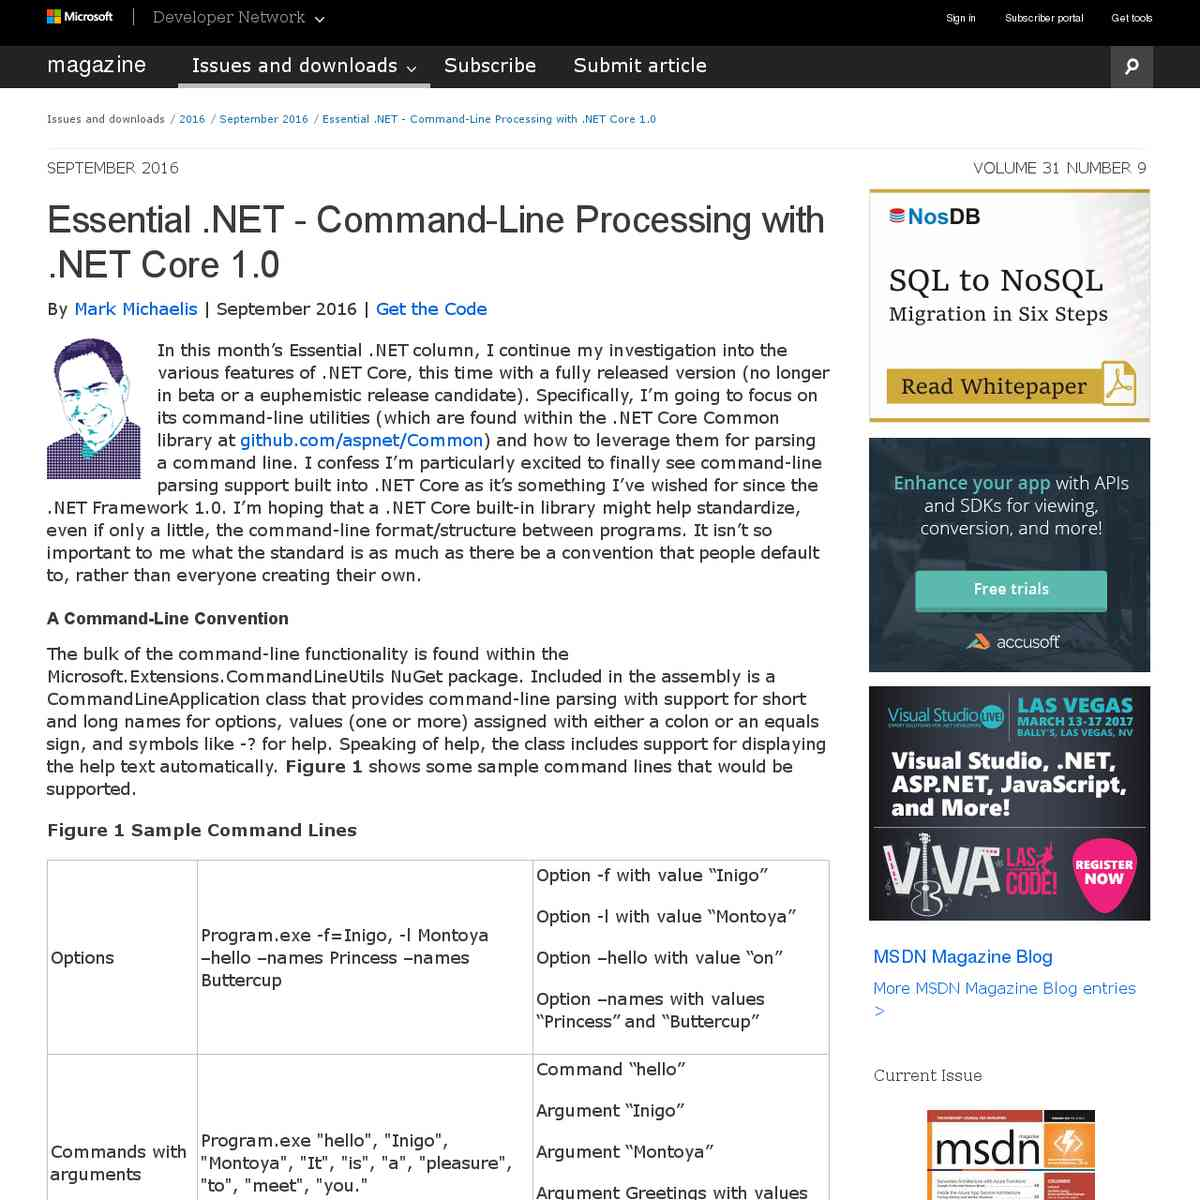 Essential .NET - Command-Line Processing with .NET Core 1.0